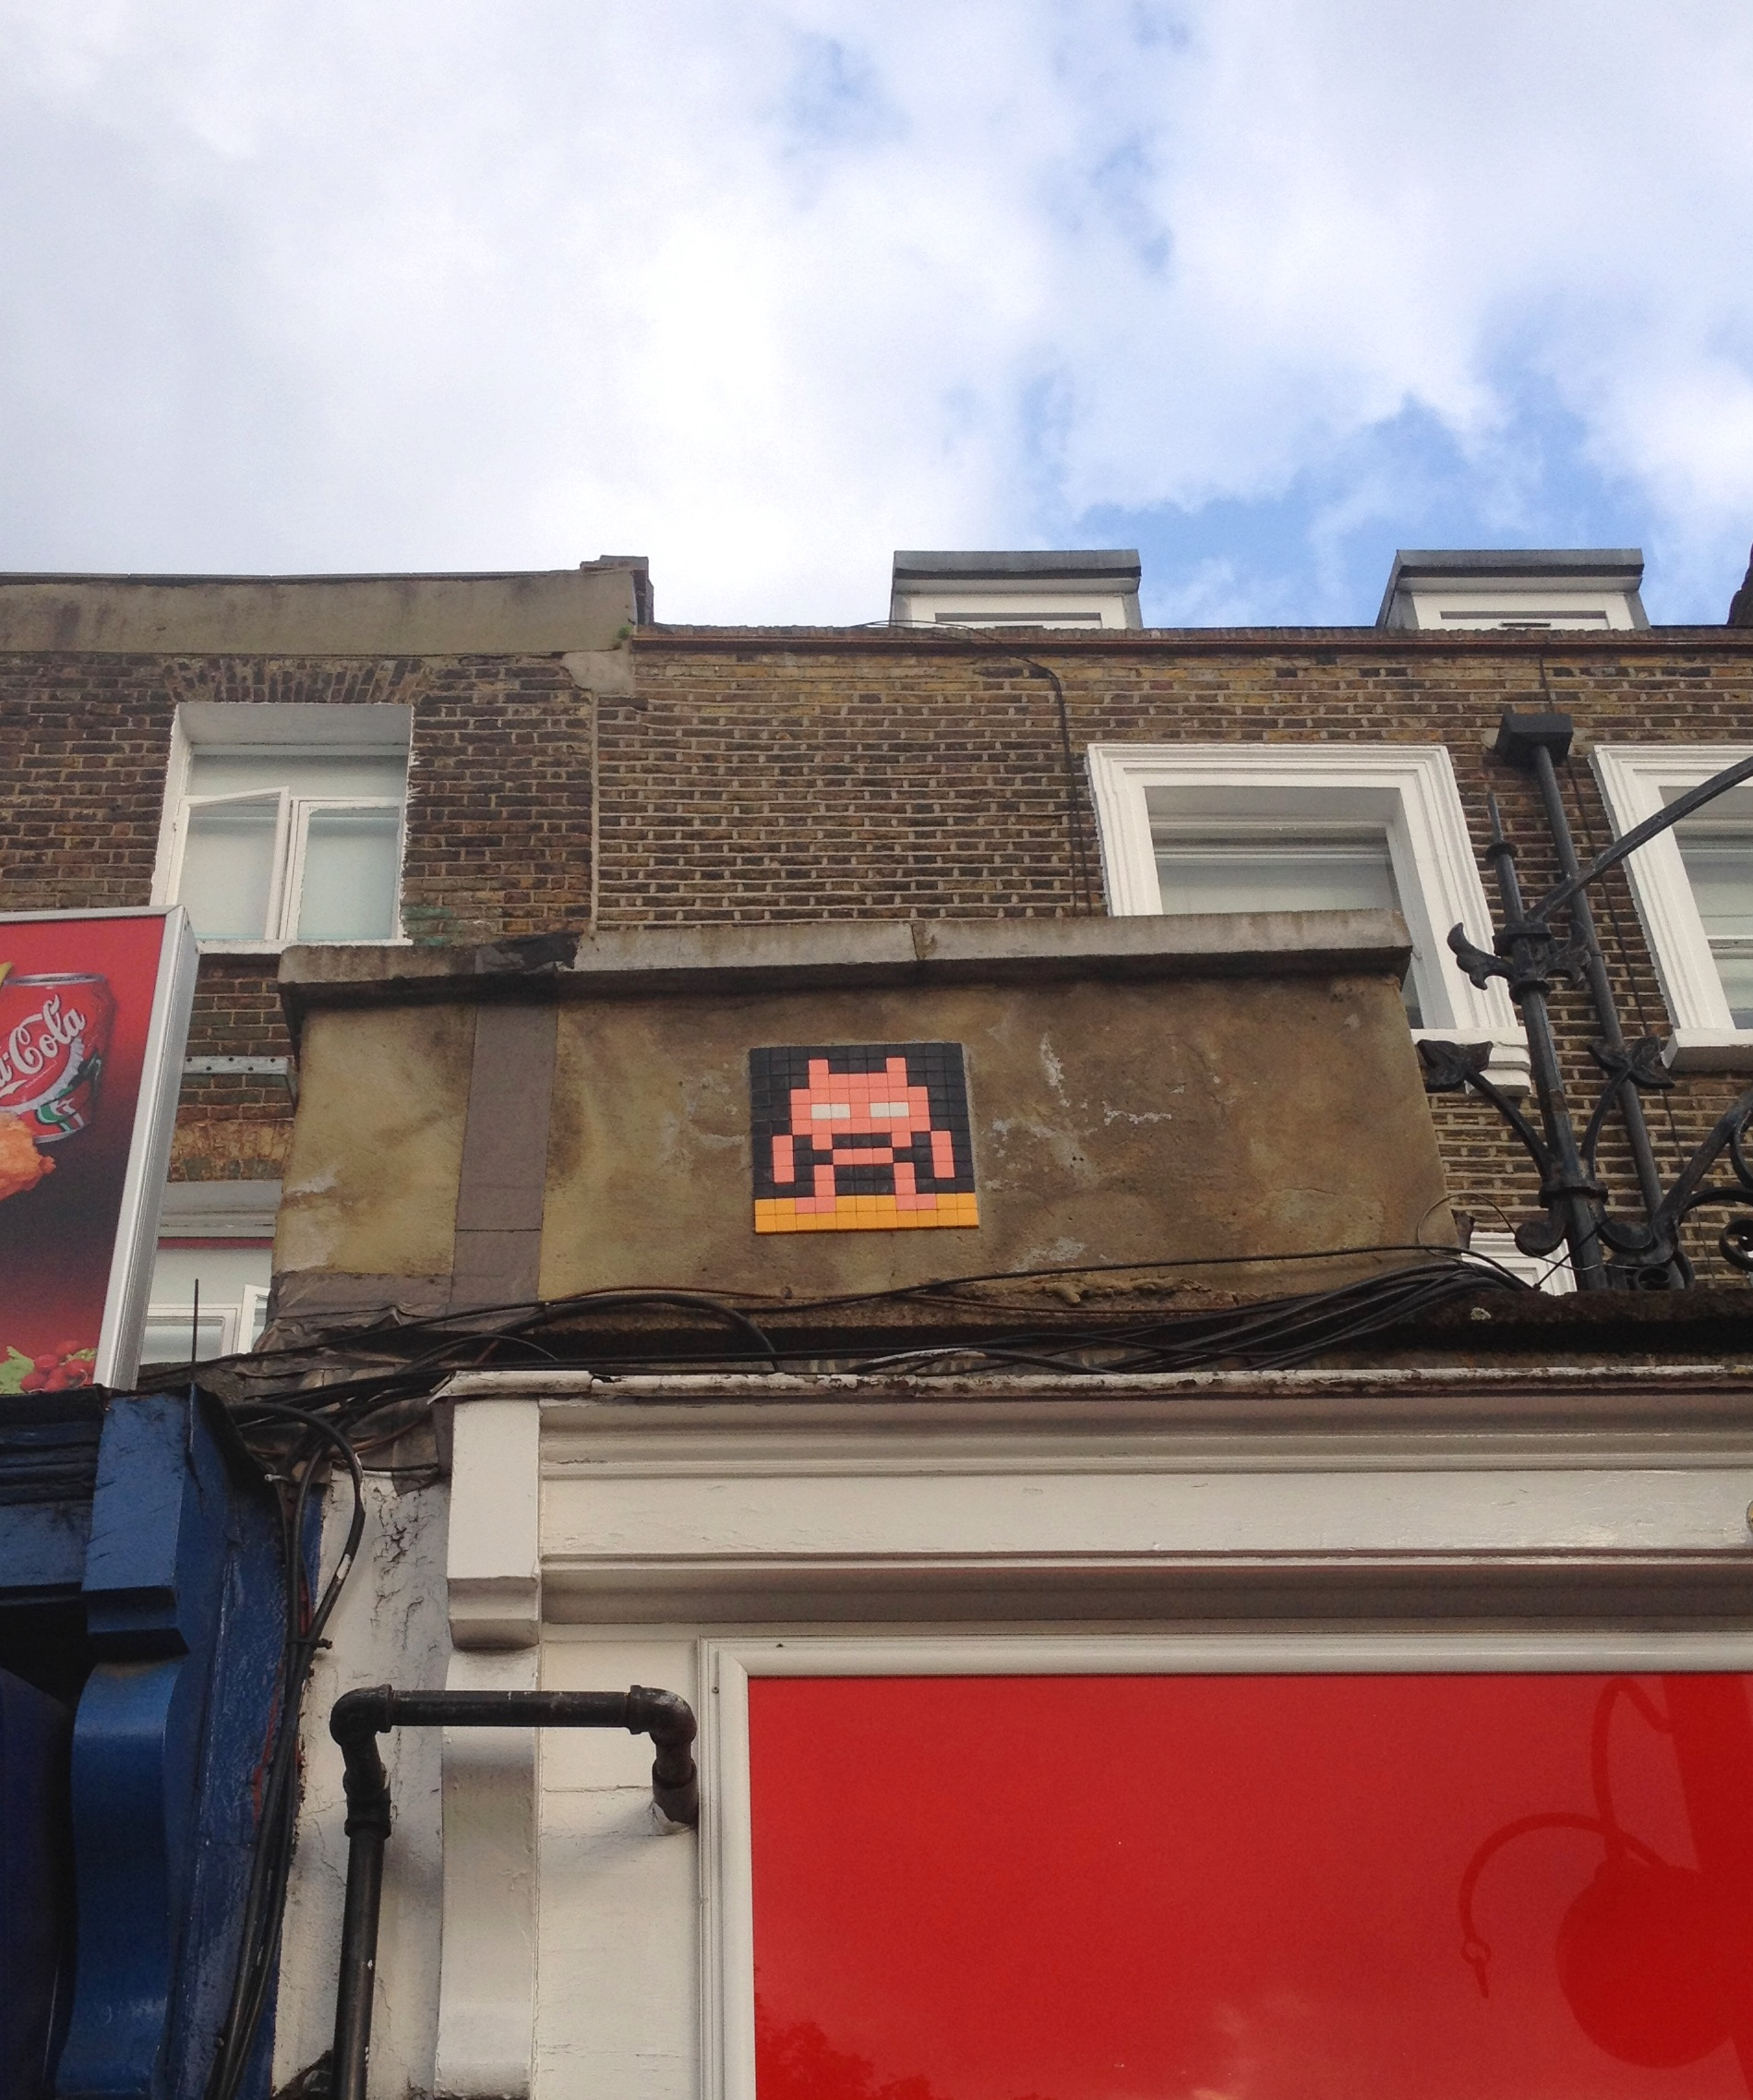 Invader graffiti, Kennington Cross - kenningtonrunoff.com